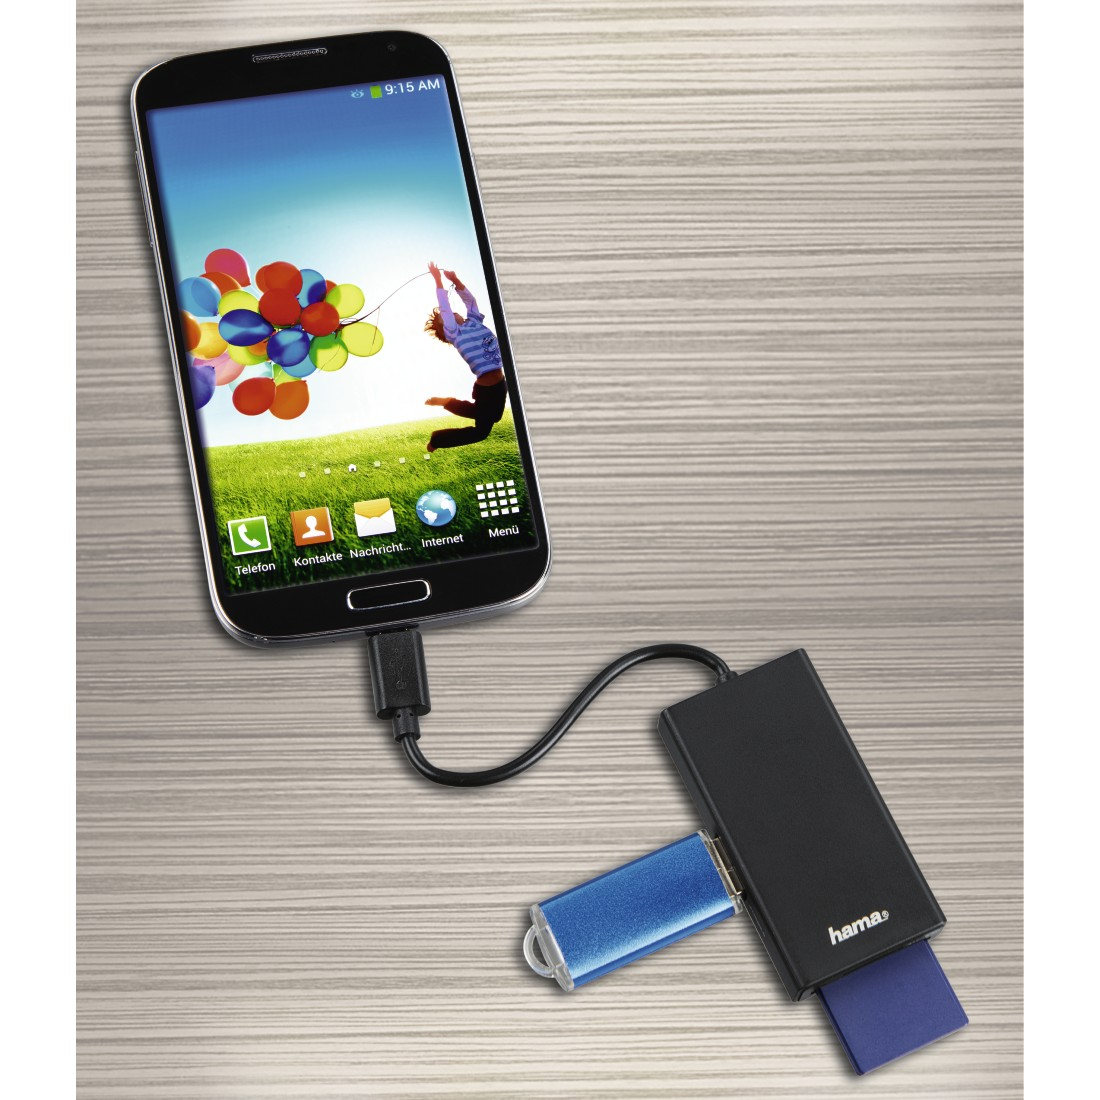 awx High-Res Appliance - Hama, HUB/Cititor de carduri USB 2.0 Tip-C pentru Smartphone/Tablete/Laptop